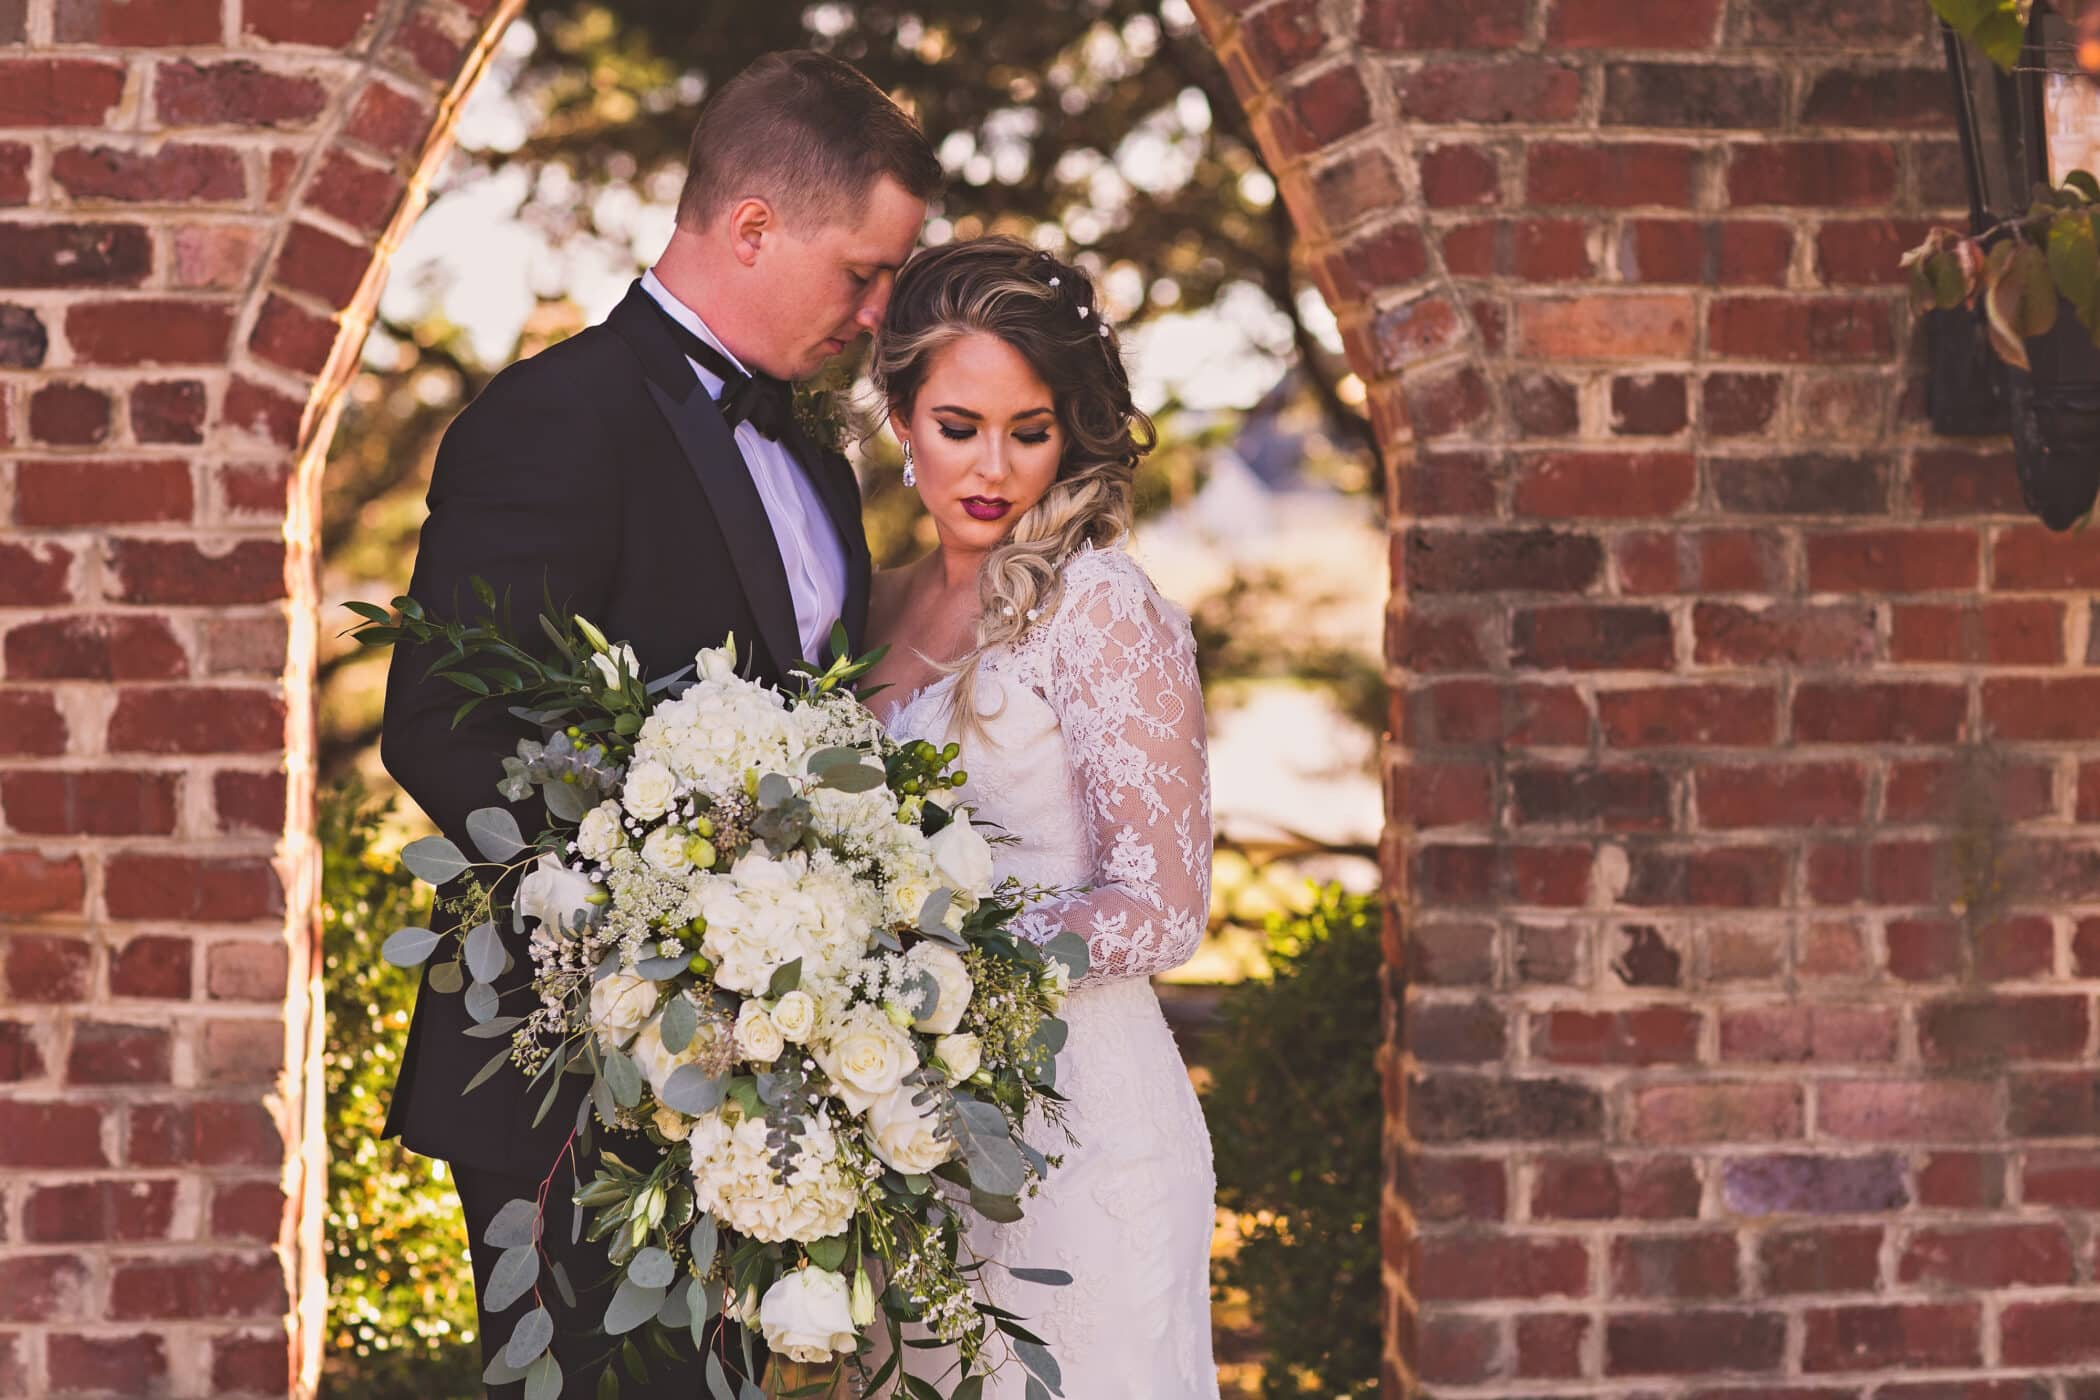 Selecting Your Virginia Wedding Venue | Entwined Events | Venue: West Manor Estate in Forest, VA | Photo Credit: Megan Vaughan Photography